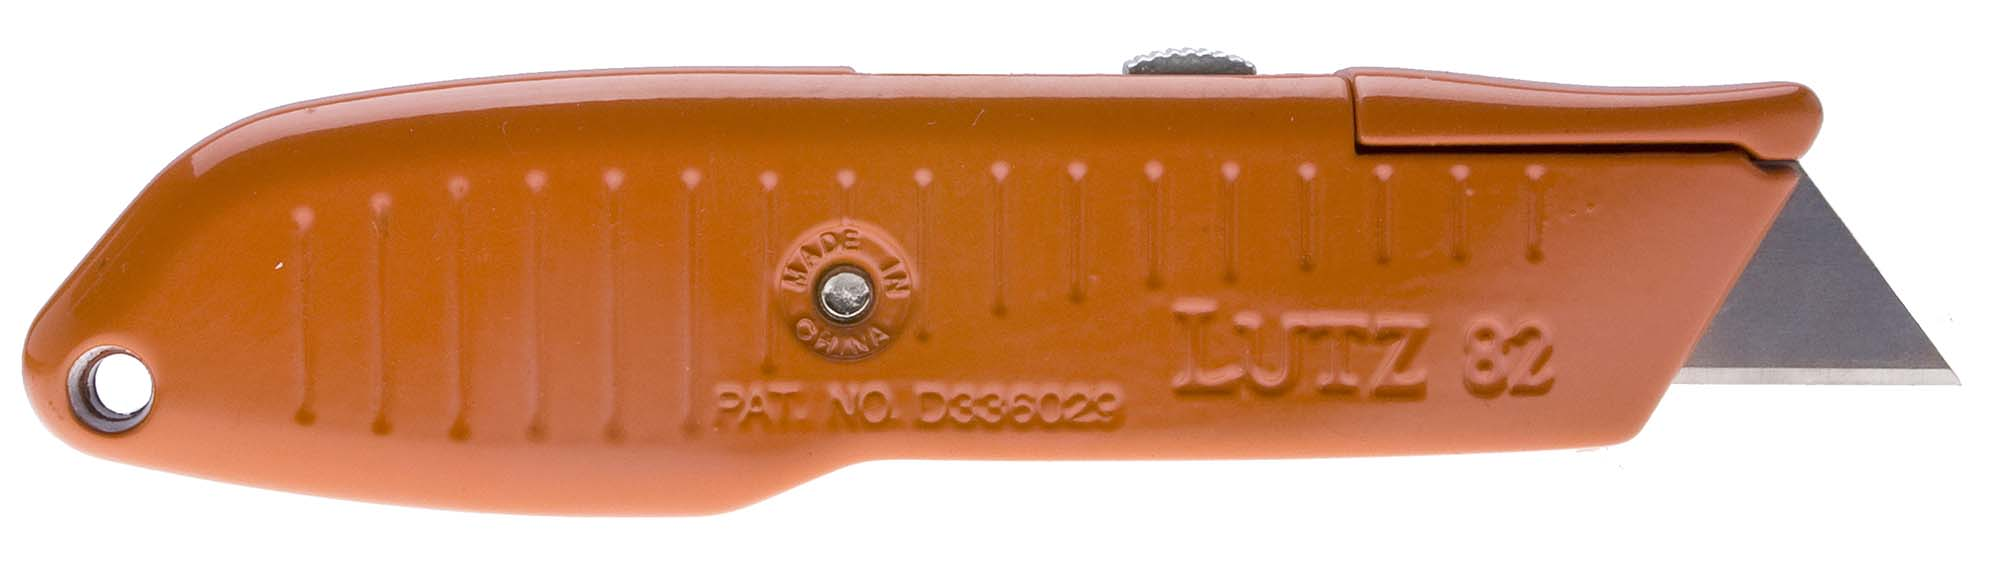 Lutz Heavy Duty Utility Knife